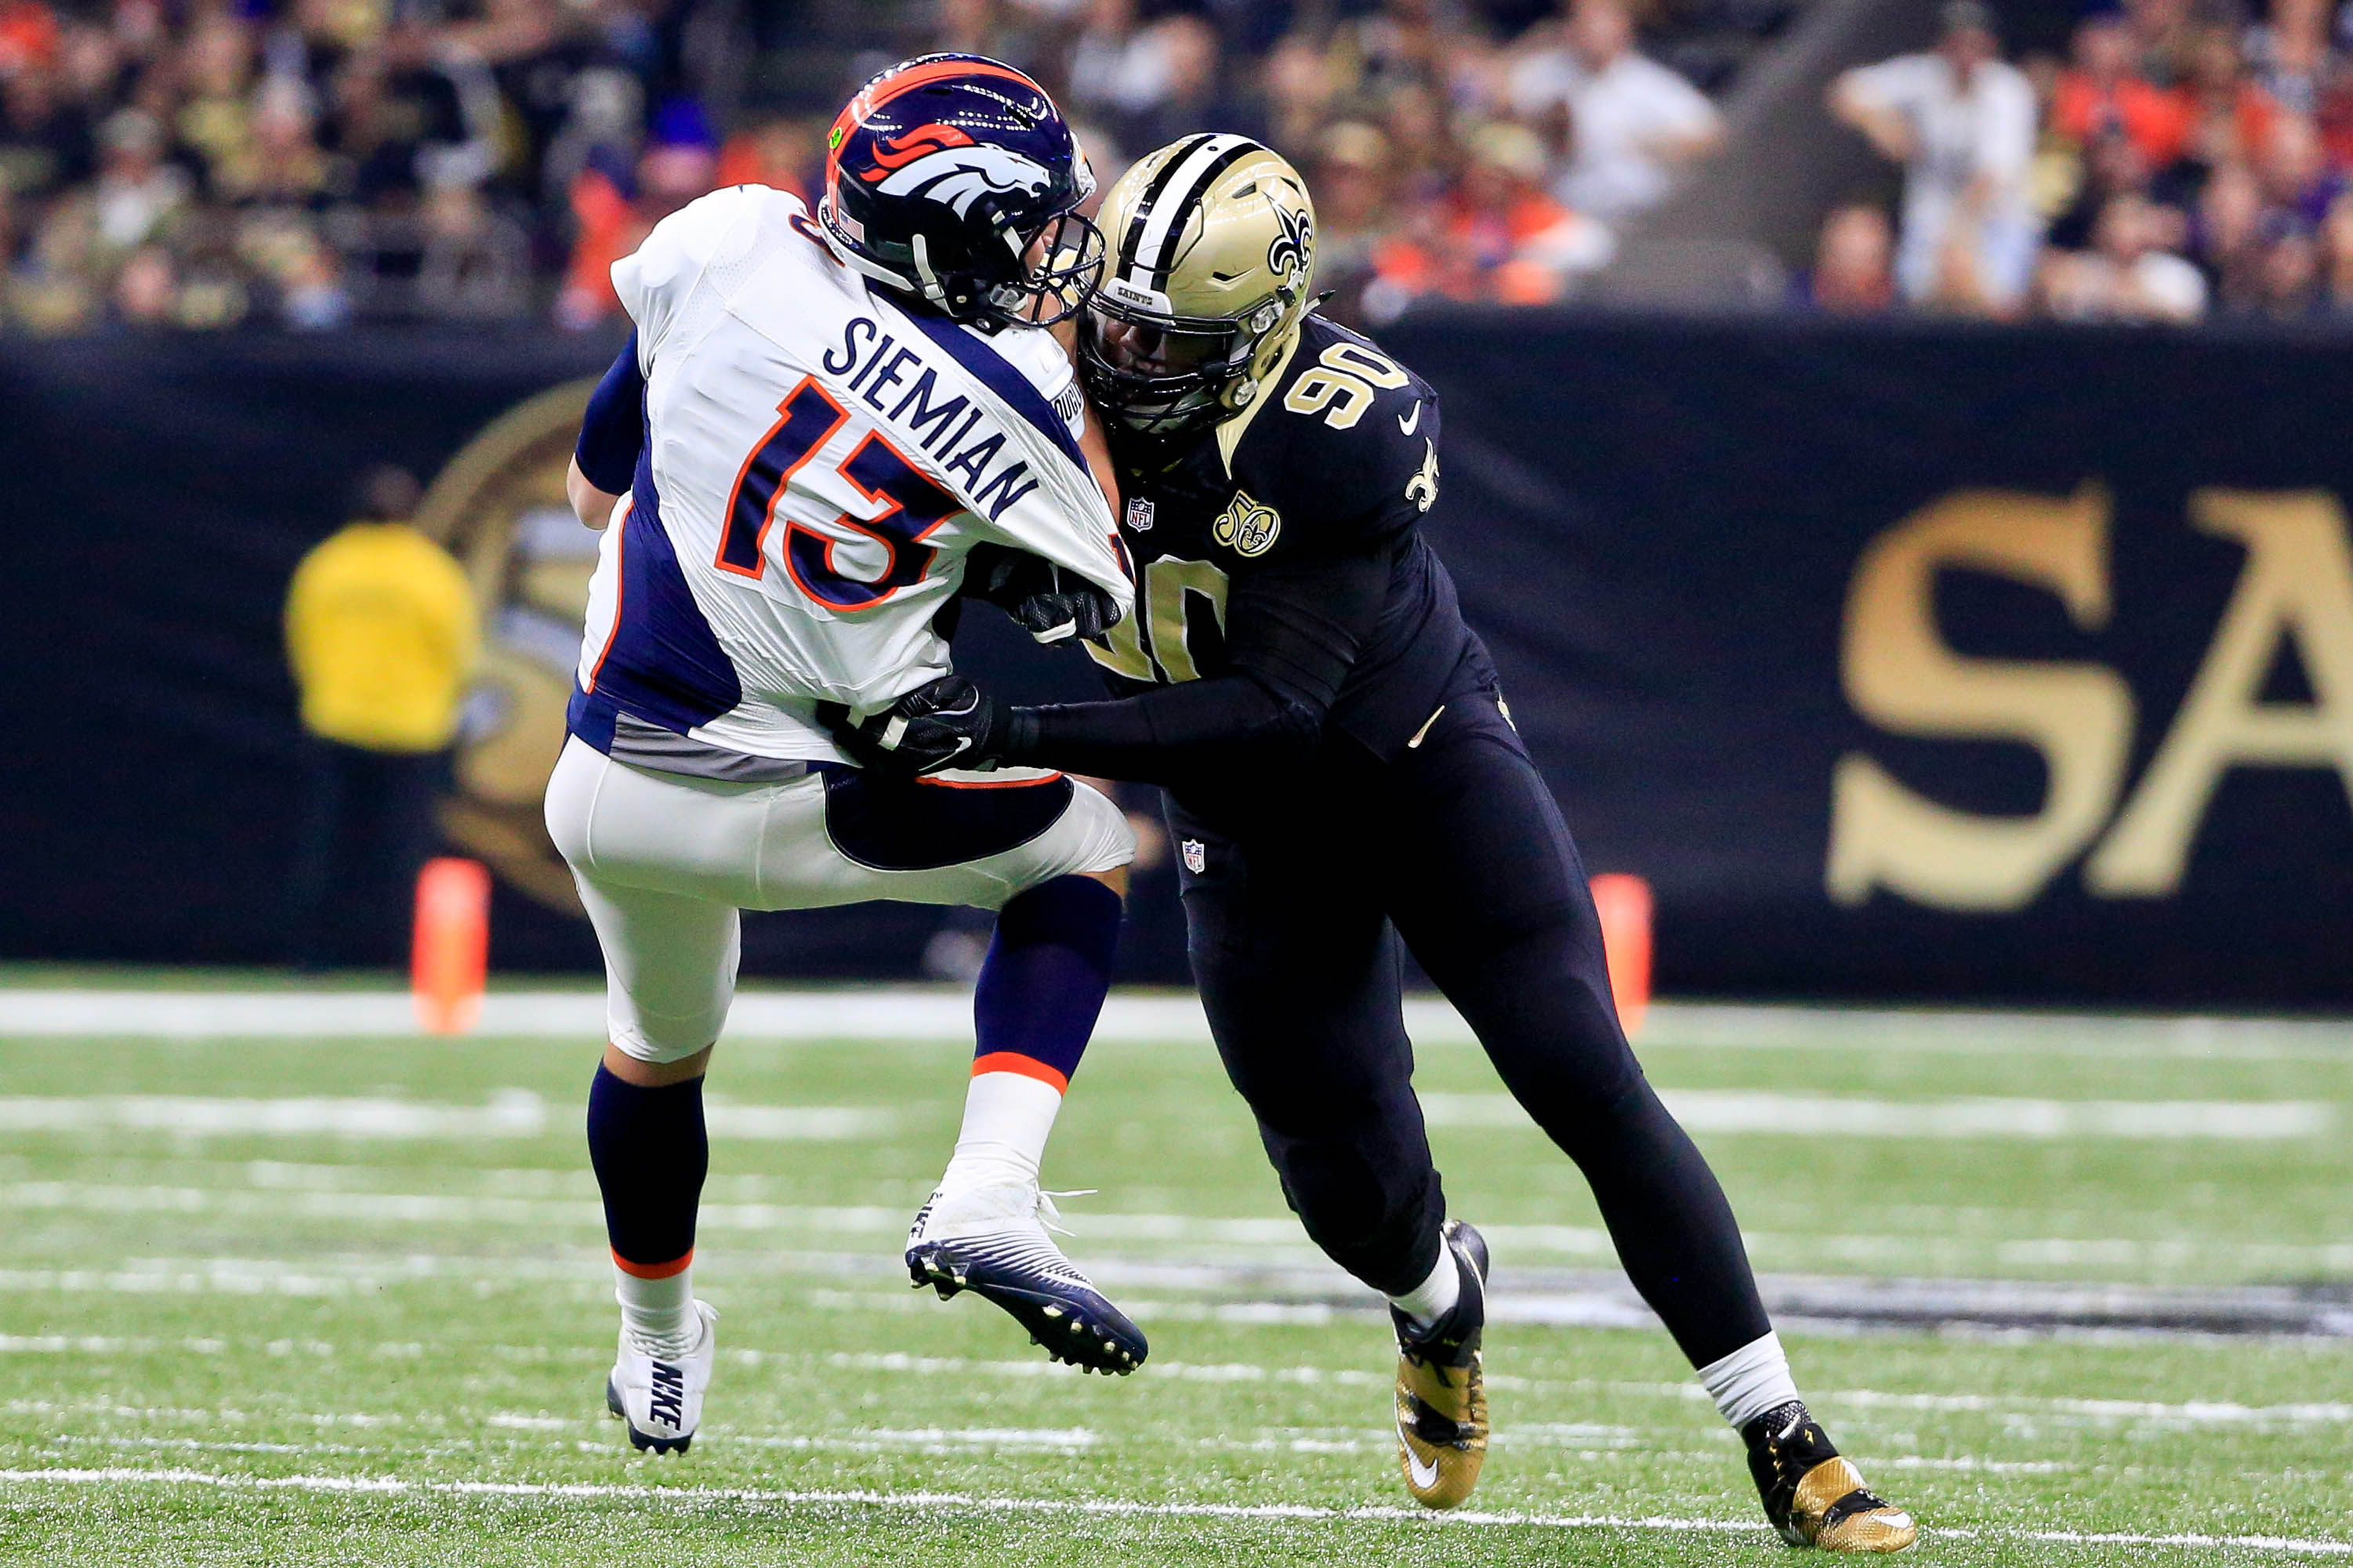 Nov 13, 2016; New Orleans, LA, USA; Denver Broncos quarterback Trevor Siemian (13) is sacked by New Orleans Saints defensive tackle Nick Fairley (90) during the first quarter of a game at the Mercedes-Benz Superdome. Mandatory Credit: Derick E. Hingle-USA TODAY Sports